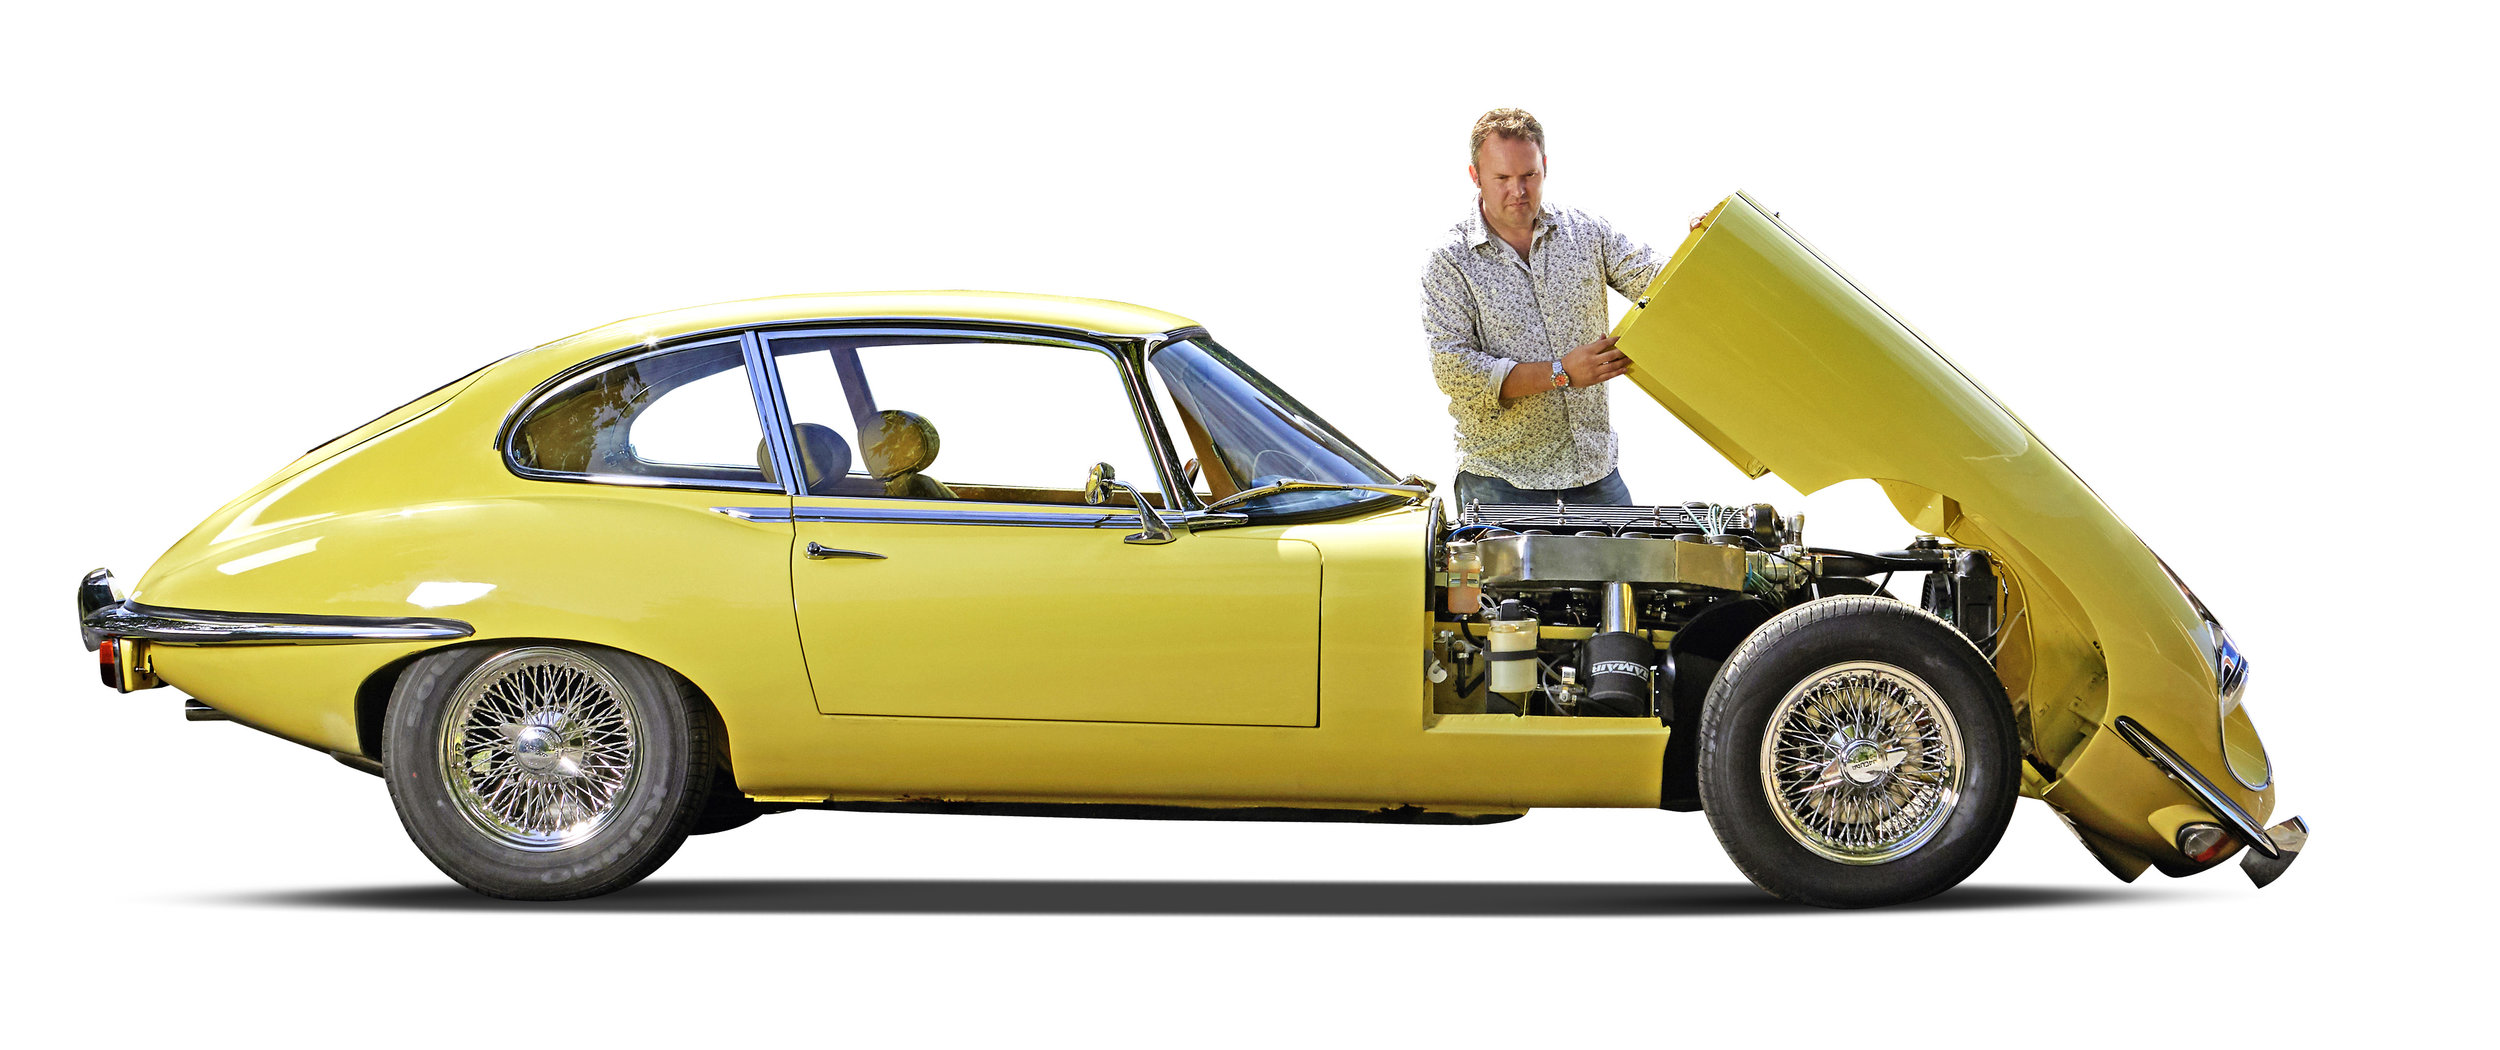 The initial plan was that Scott Hilton would get his E-Type running and undertake a twelve-month rolling restoration. Although the interior was cracked and faded and the paint was damaged and sun-bleached, it didn't look all that bad a starting point. 'Then the project just snowballed,' he recalls. And as always, when he did finally begin, it was never going to be a simple job…